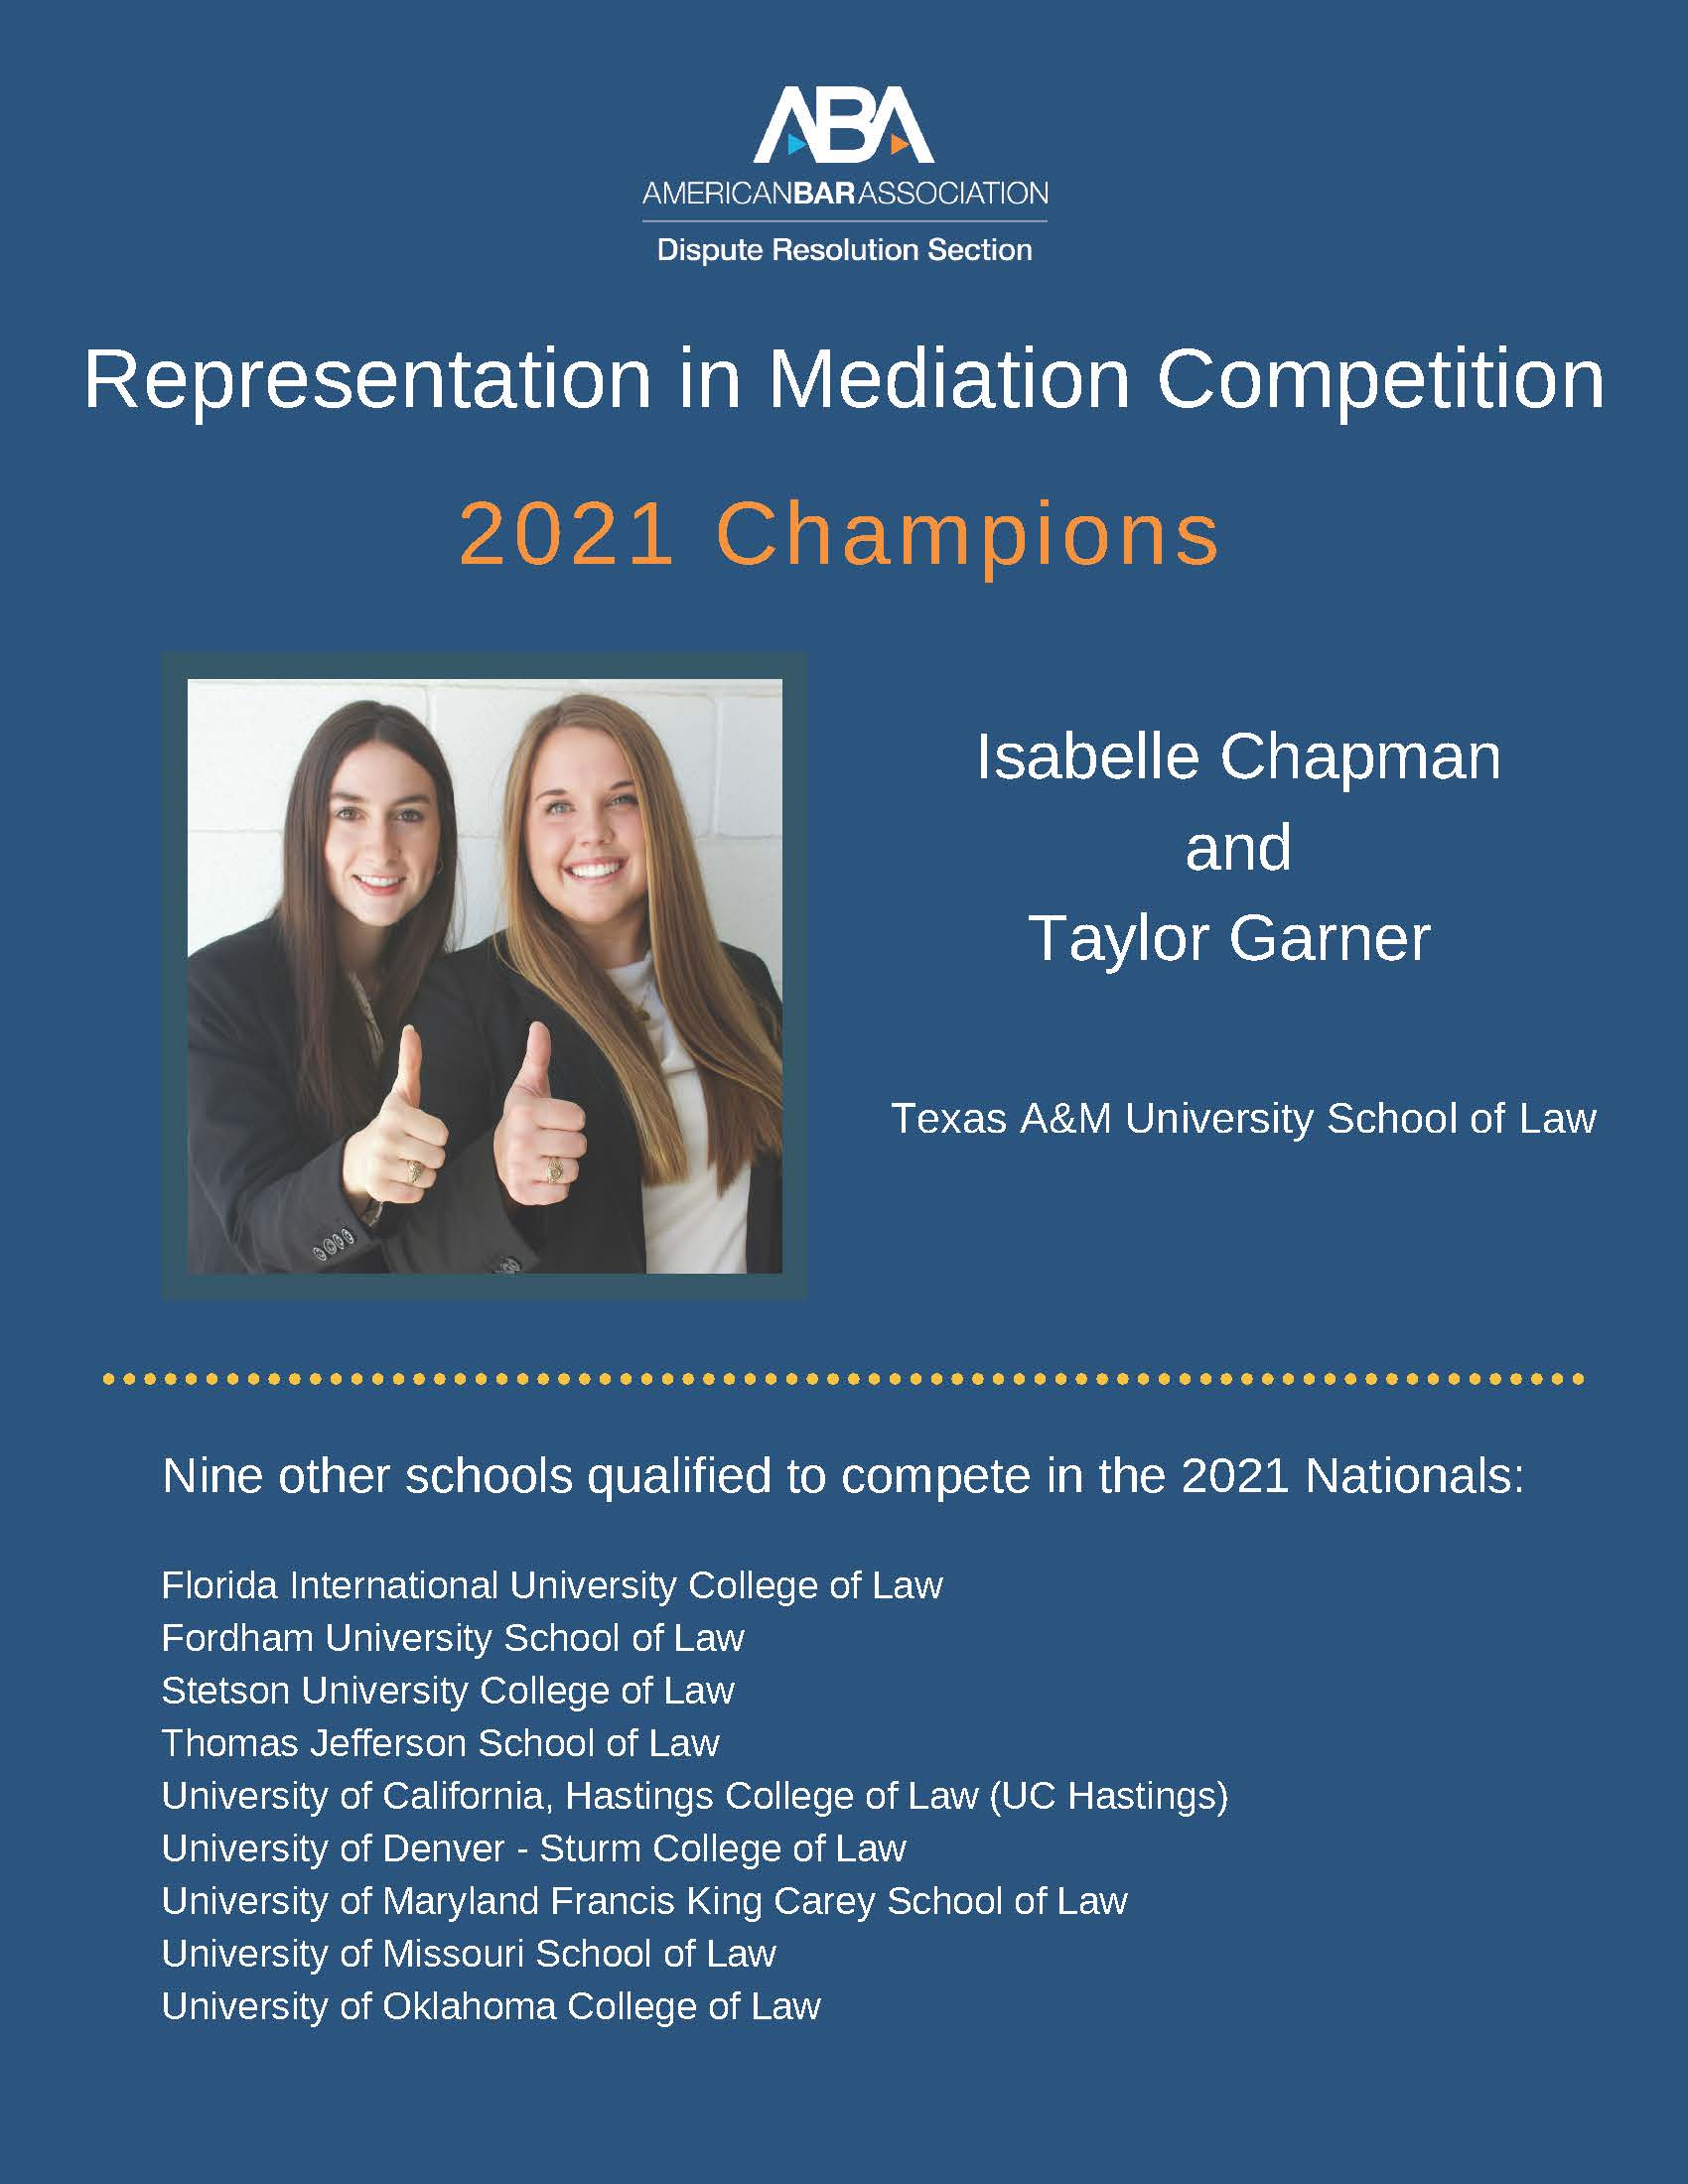 Representation in Mediation Competition 2021 Champions flyer